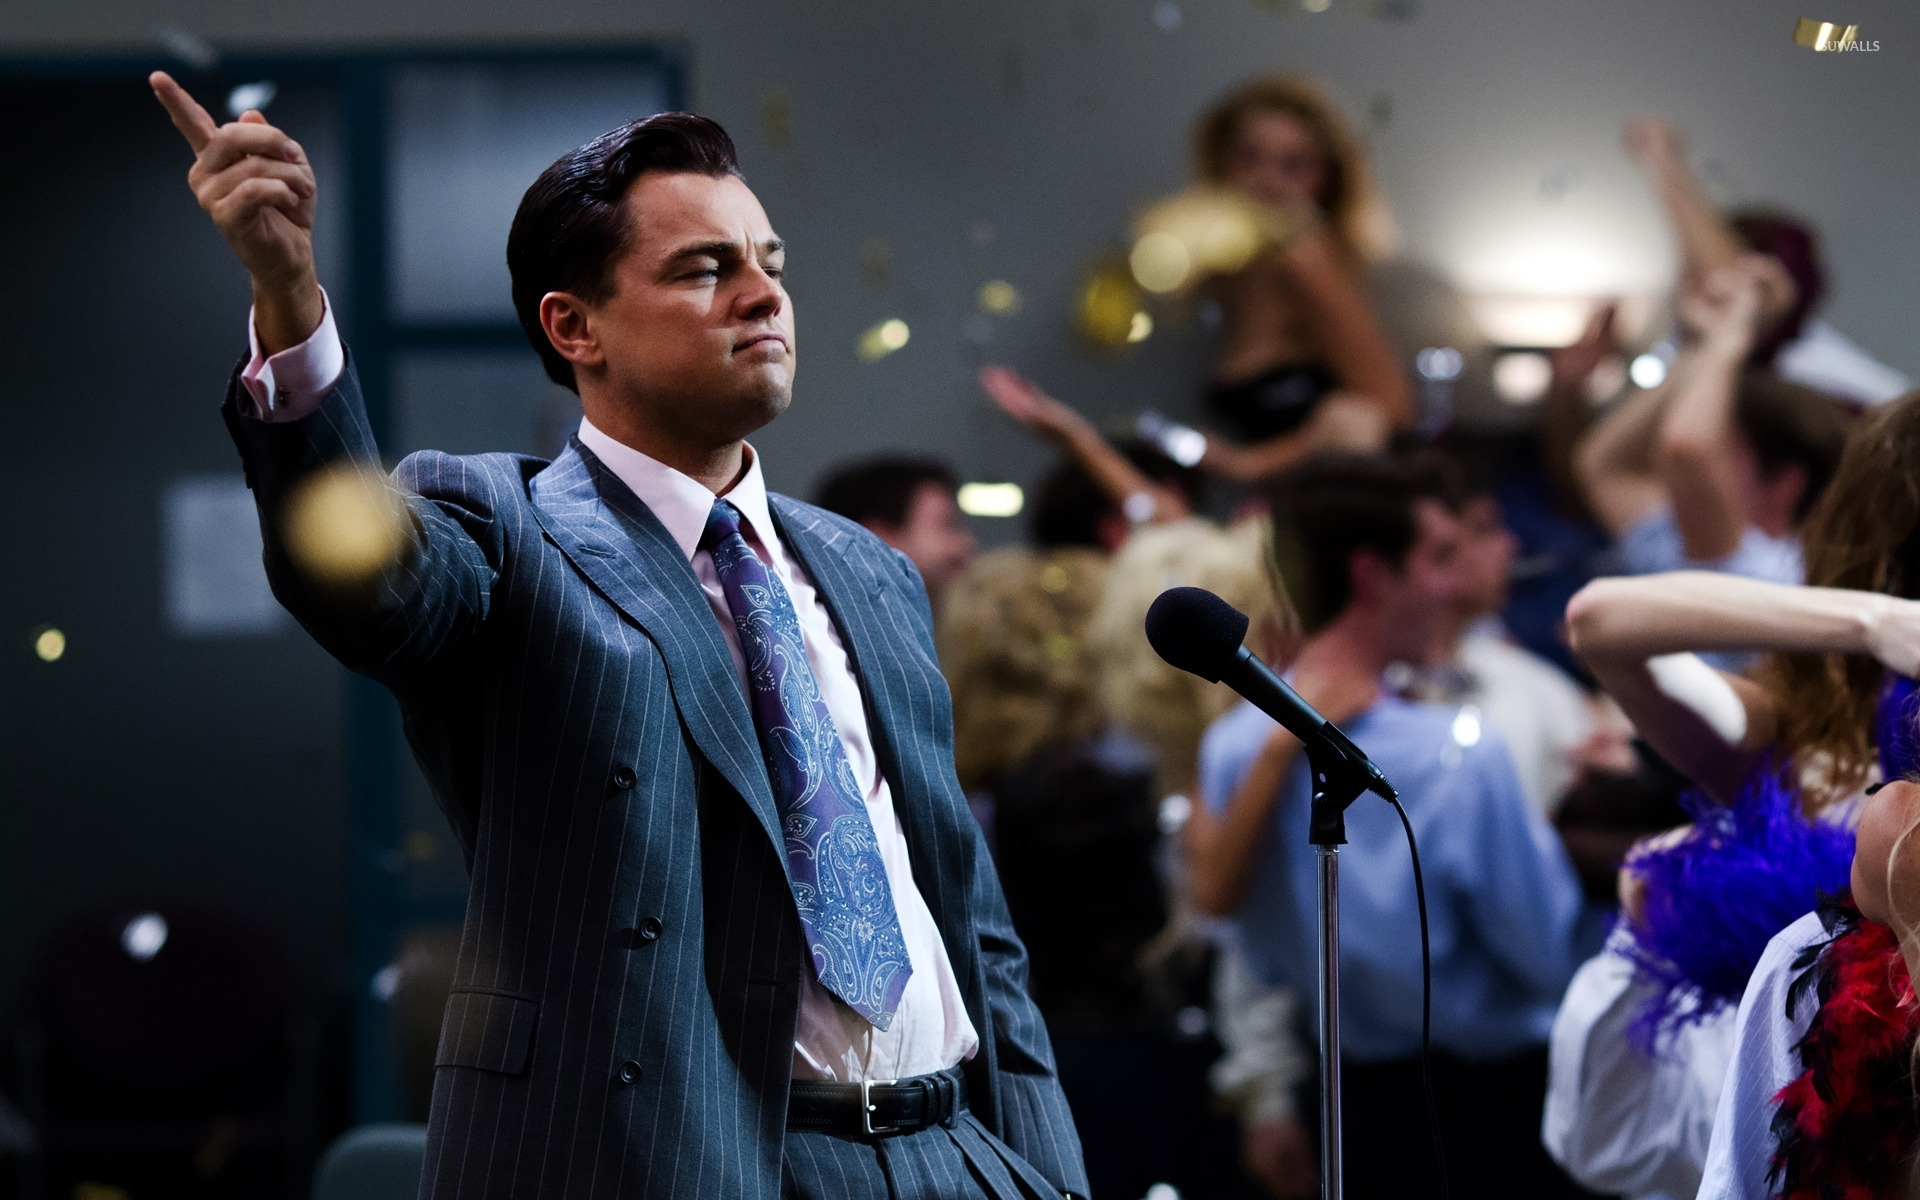 the wolf of wall street wallpaper - movie wallpapers - #26211